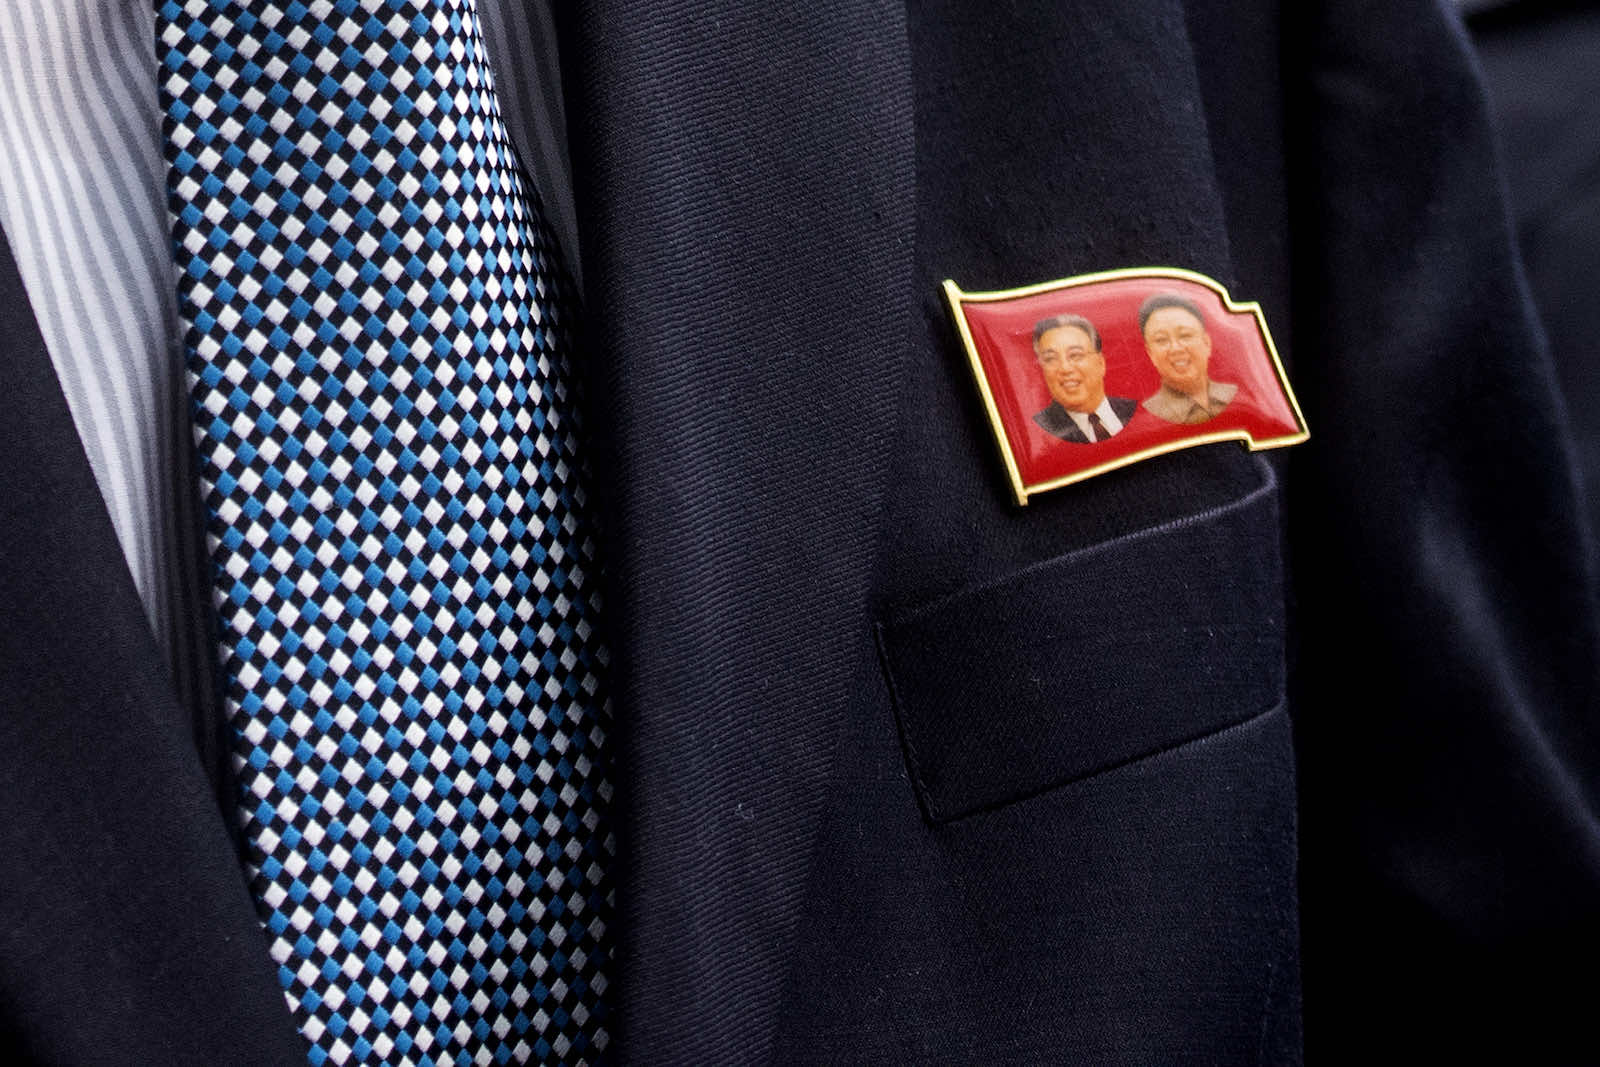 A North Korean diplomat wears a badge depicting former leaders Kim Il Sung and Kim Jong Il (Vivian Lo via Getty Images)